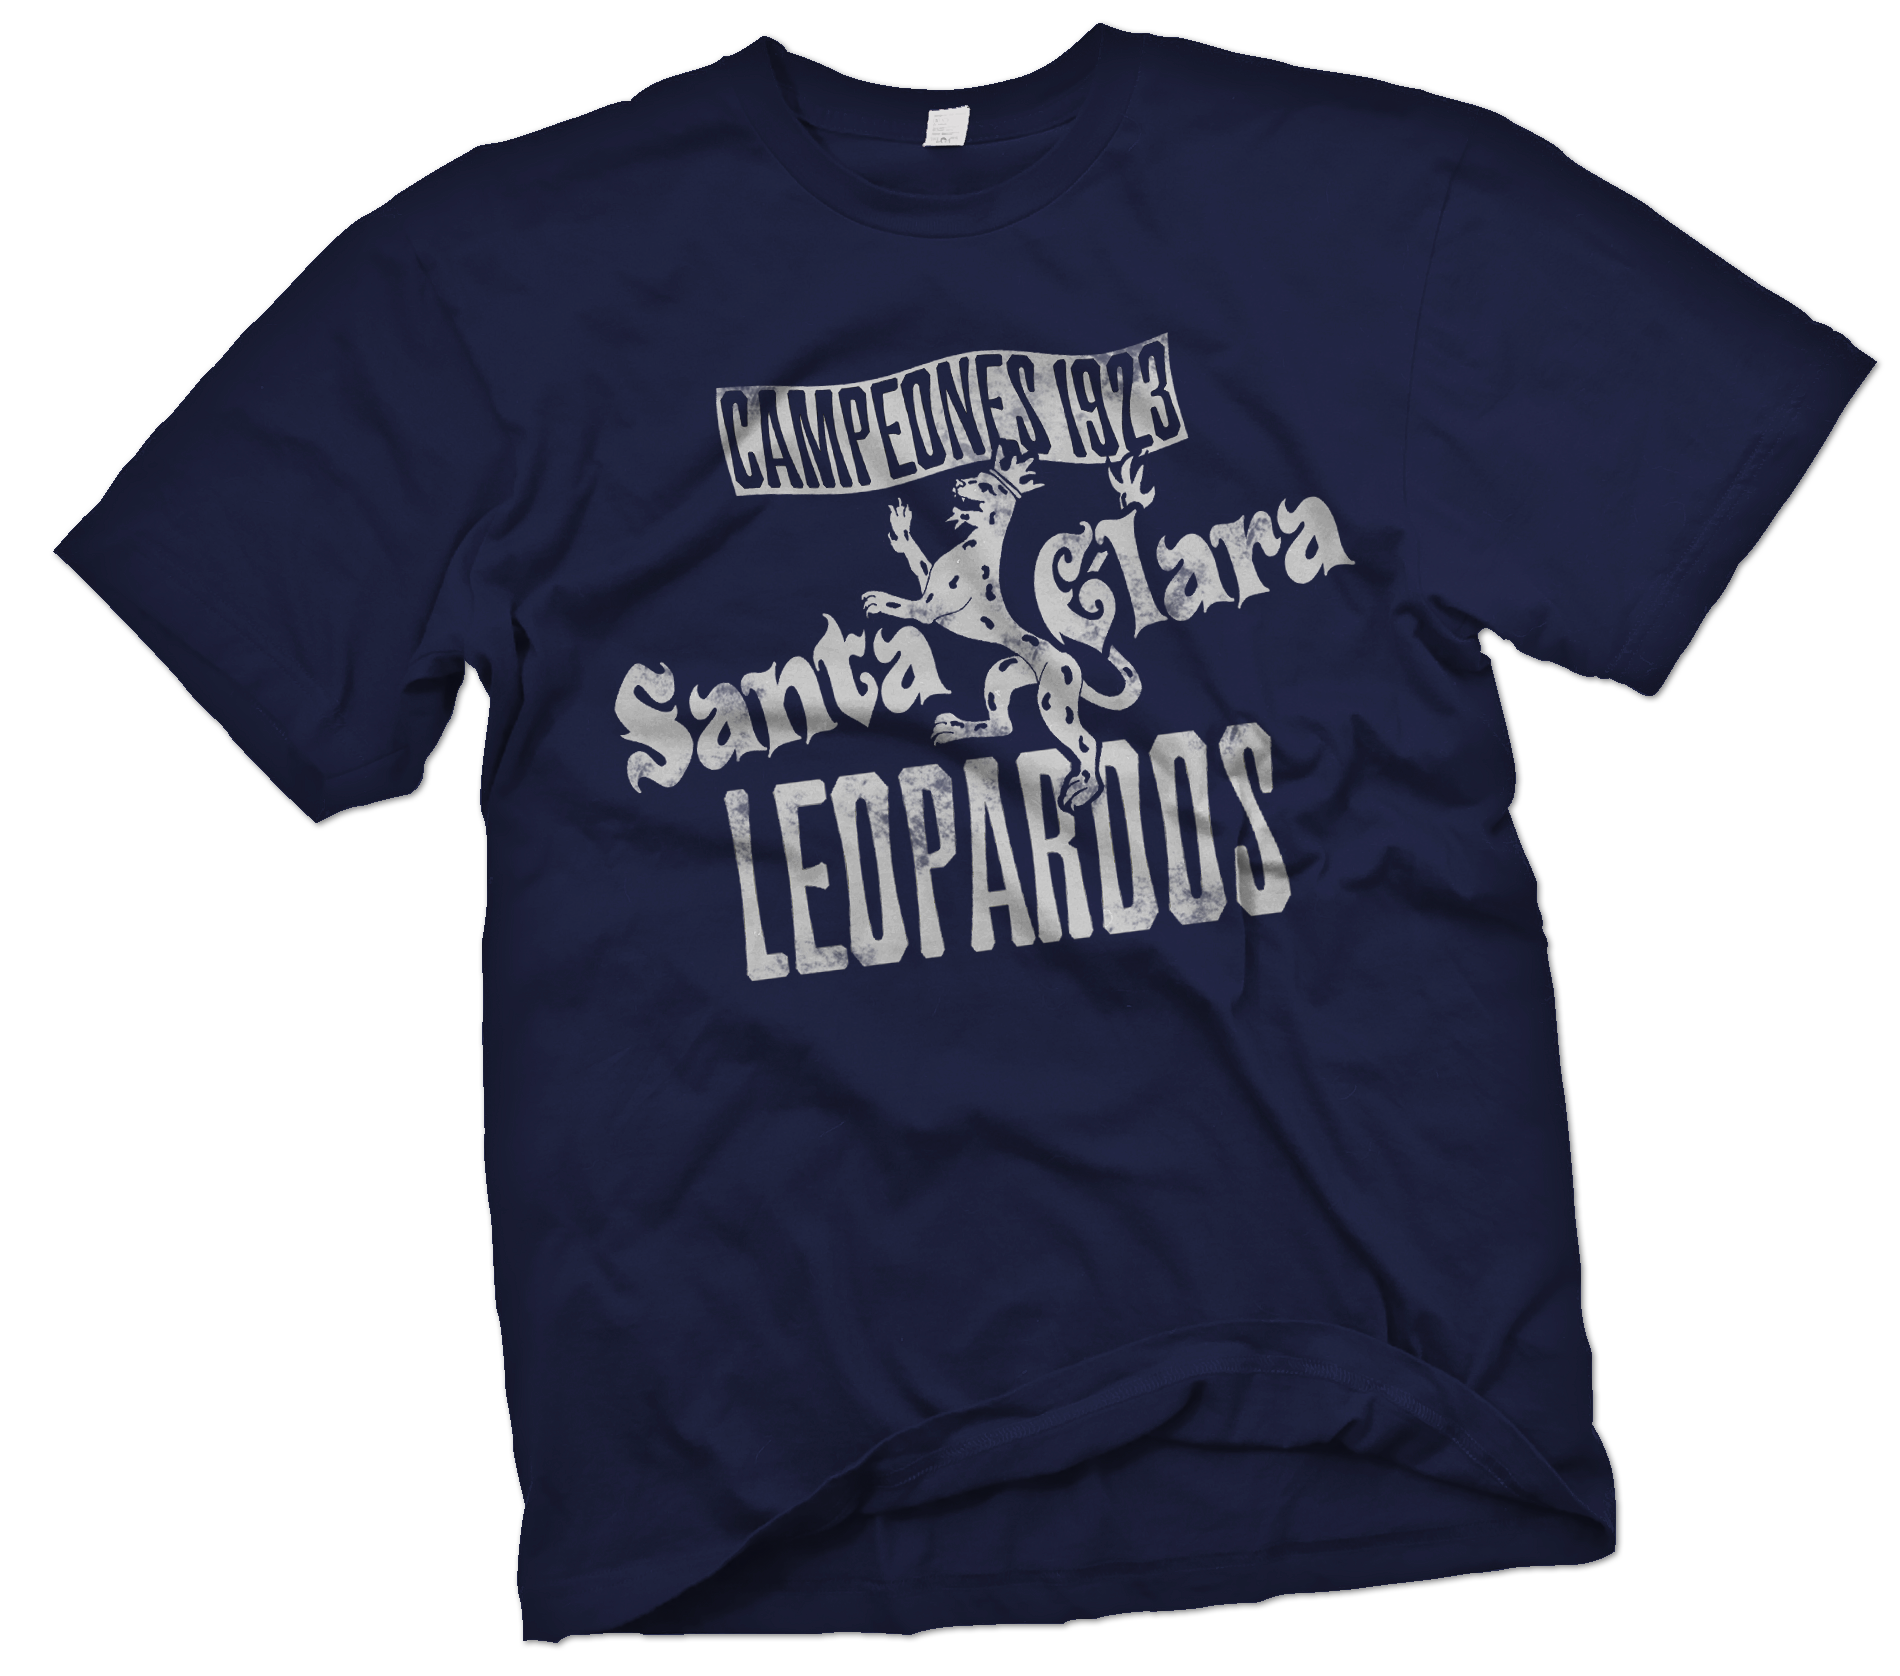 Santa Clara Leopardos Handpainted T-Shirt - Negro League Baseball Shop